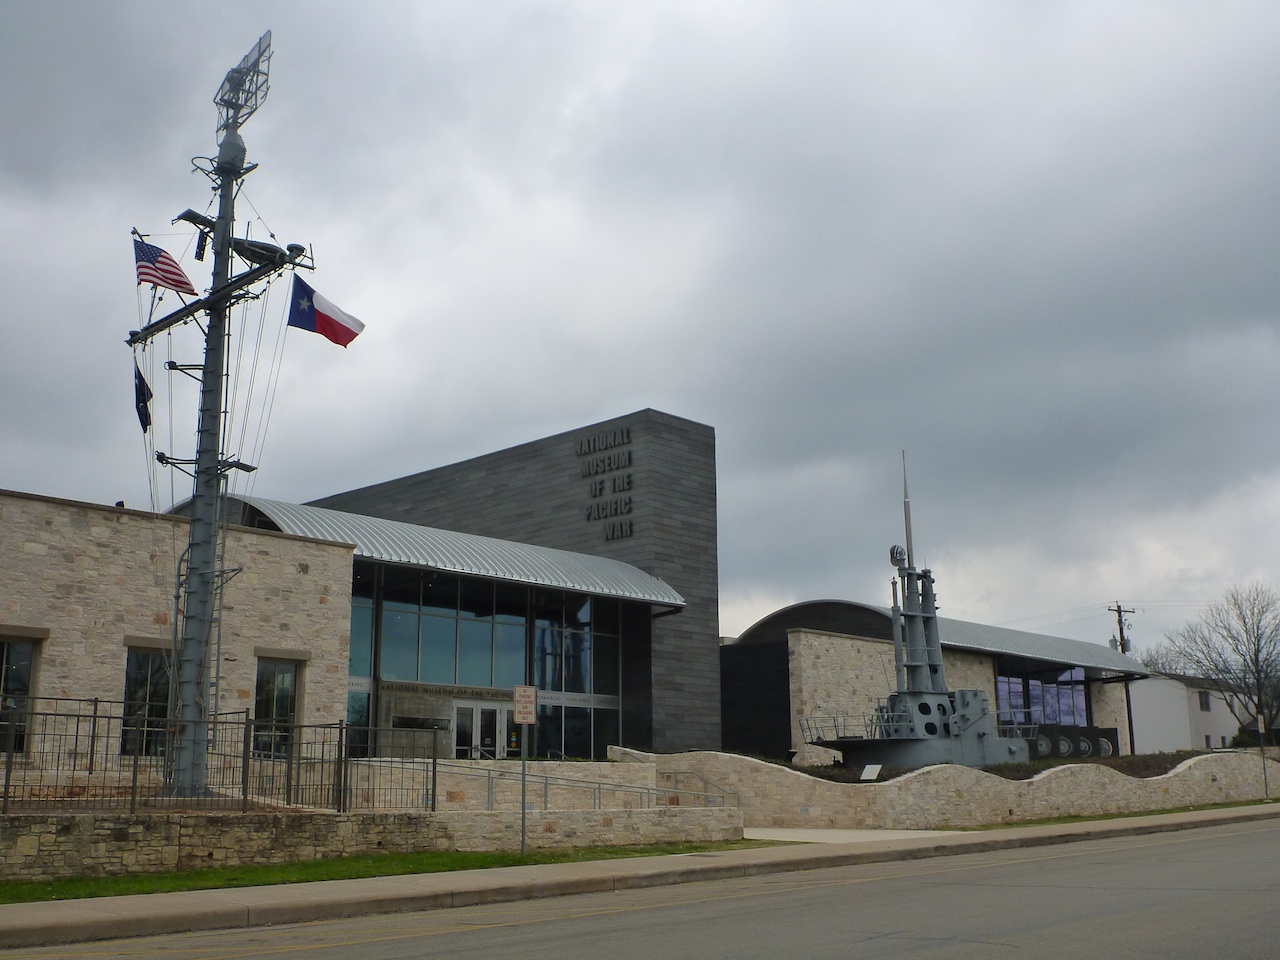 The National Museum Of The Pacific War In Fredericksburg, TX